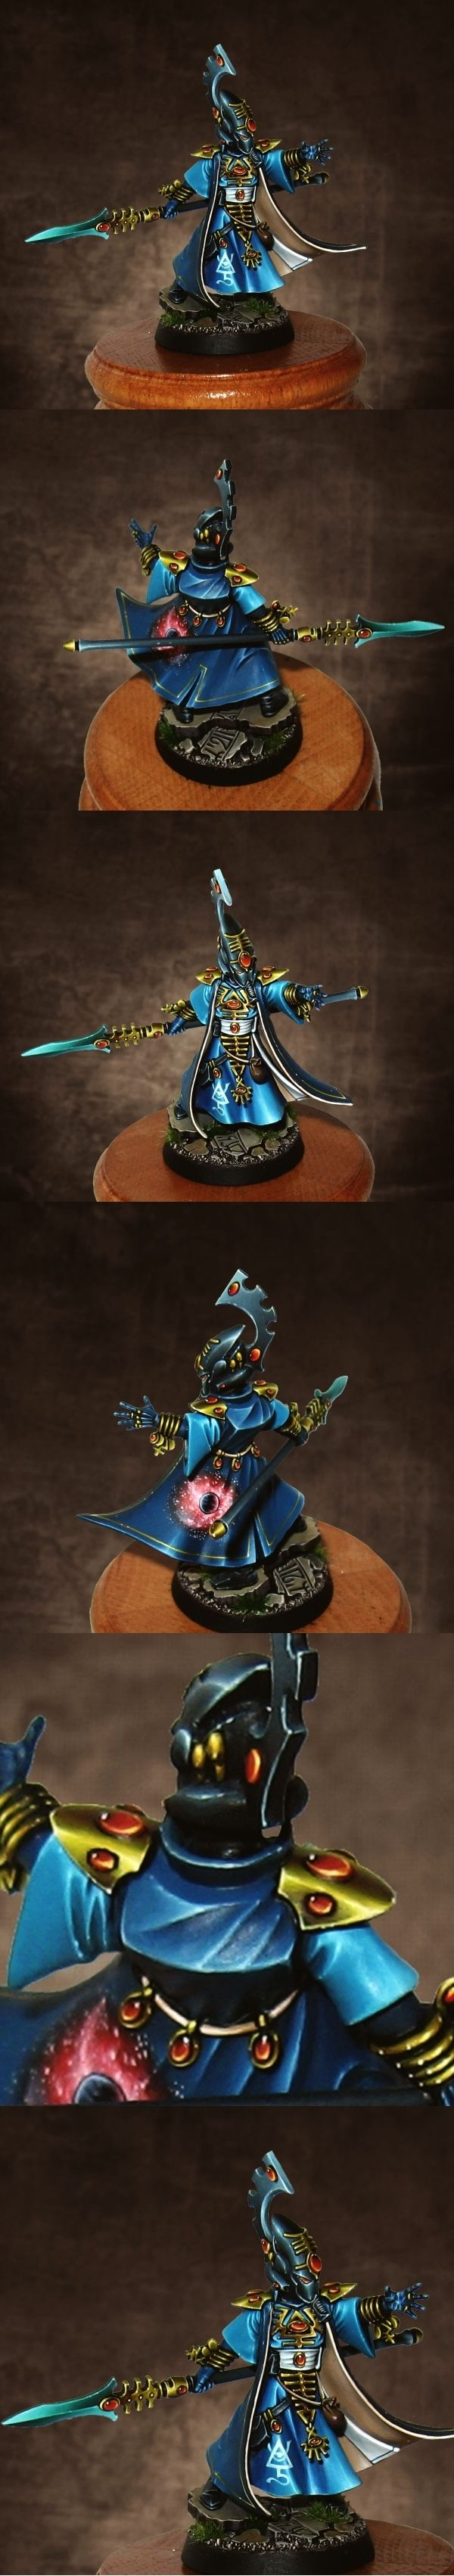 Warhammer 40K Eldar Farseer. Close-ups. Spectacular paint job on that one